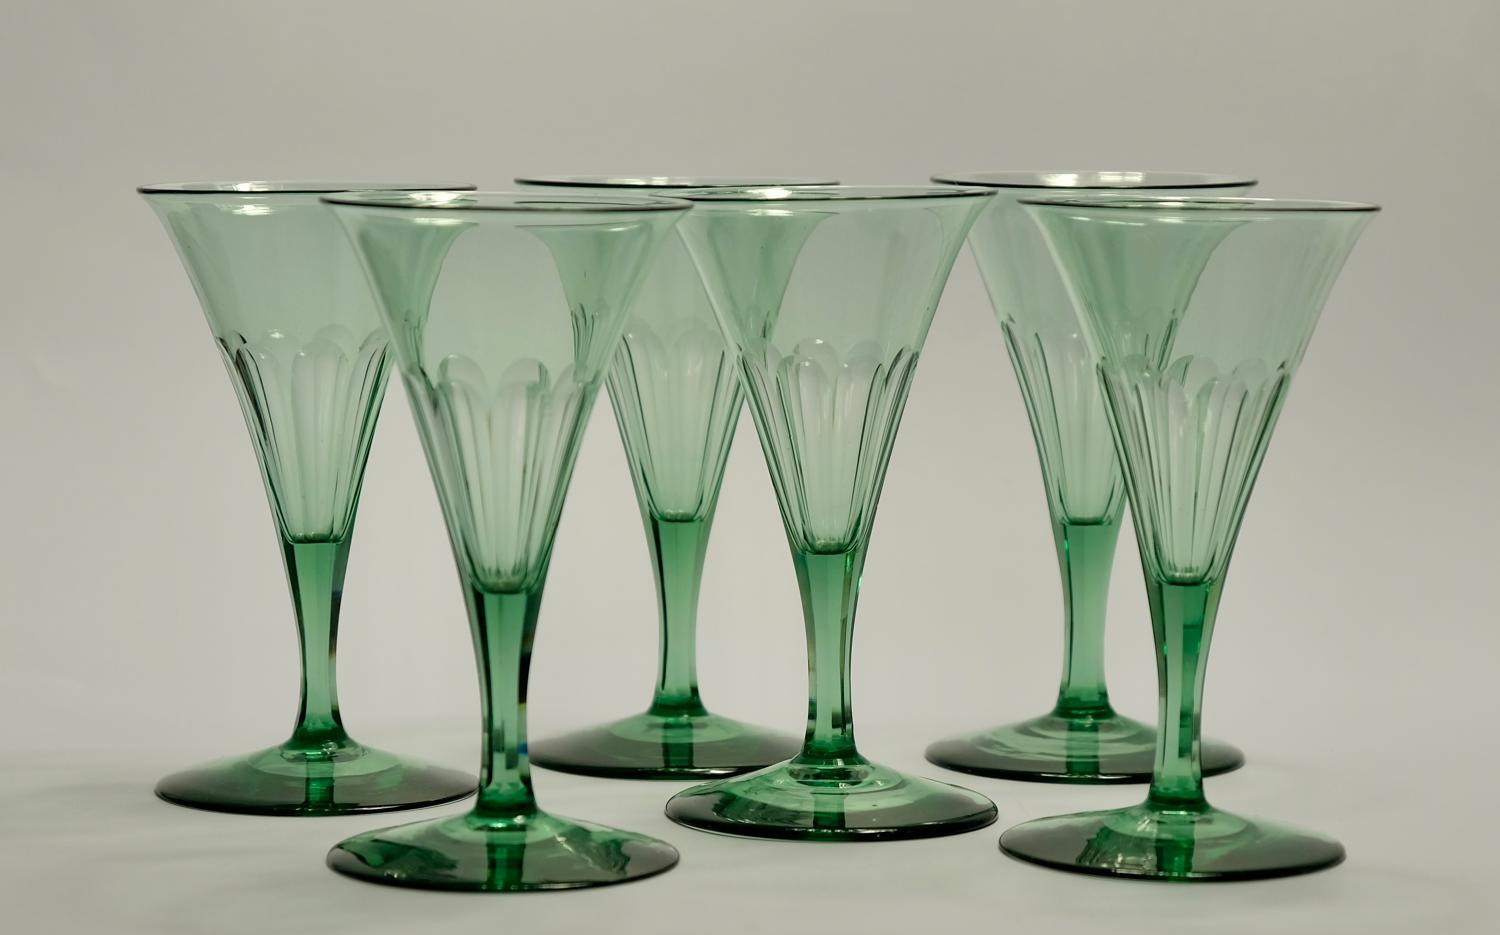 Set of six wine glasses C1840